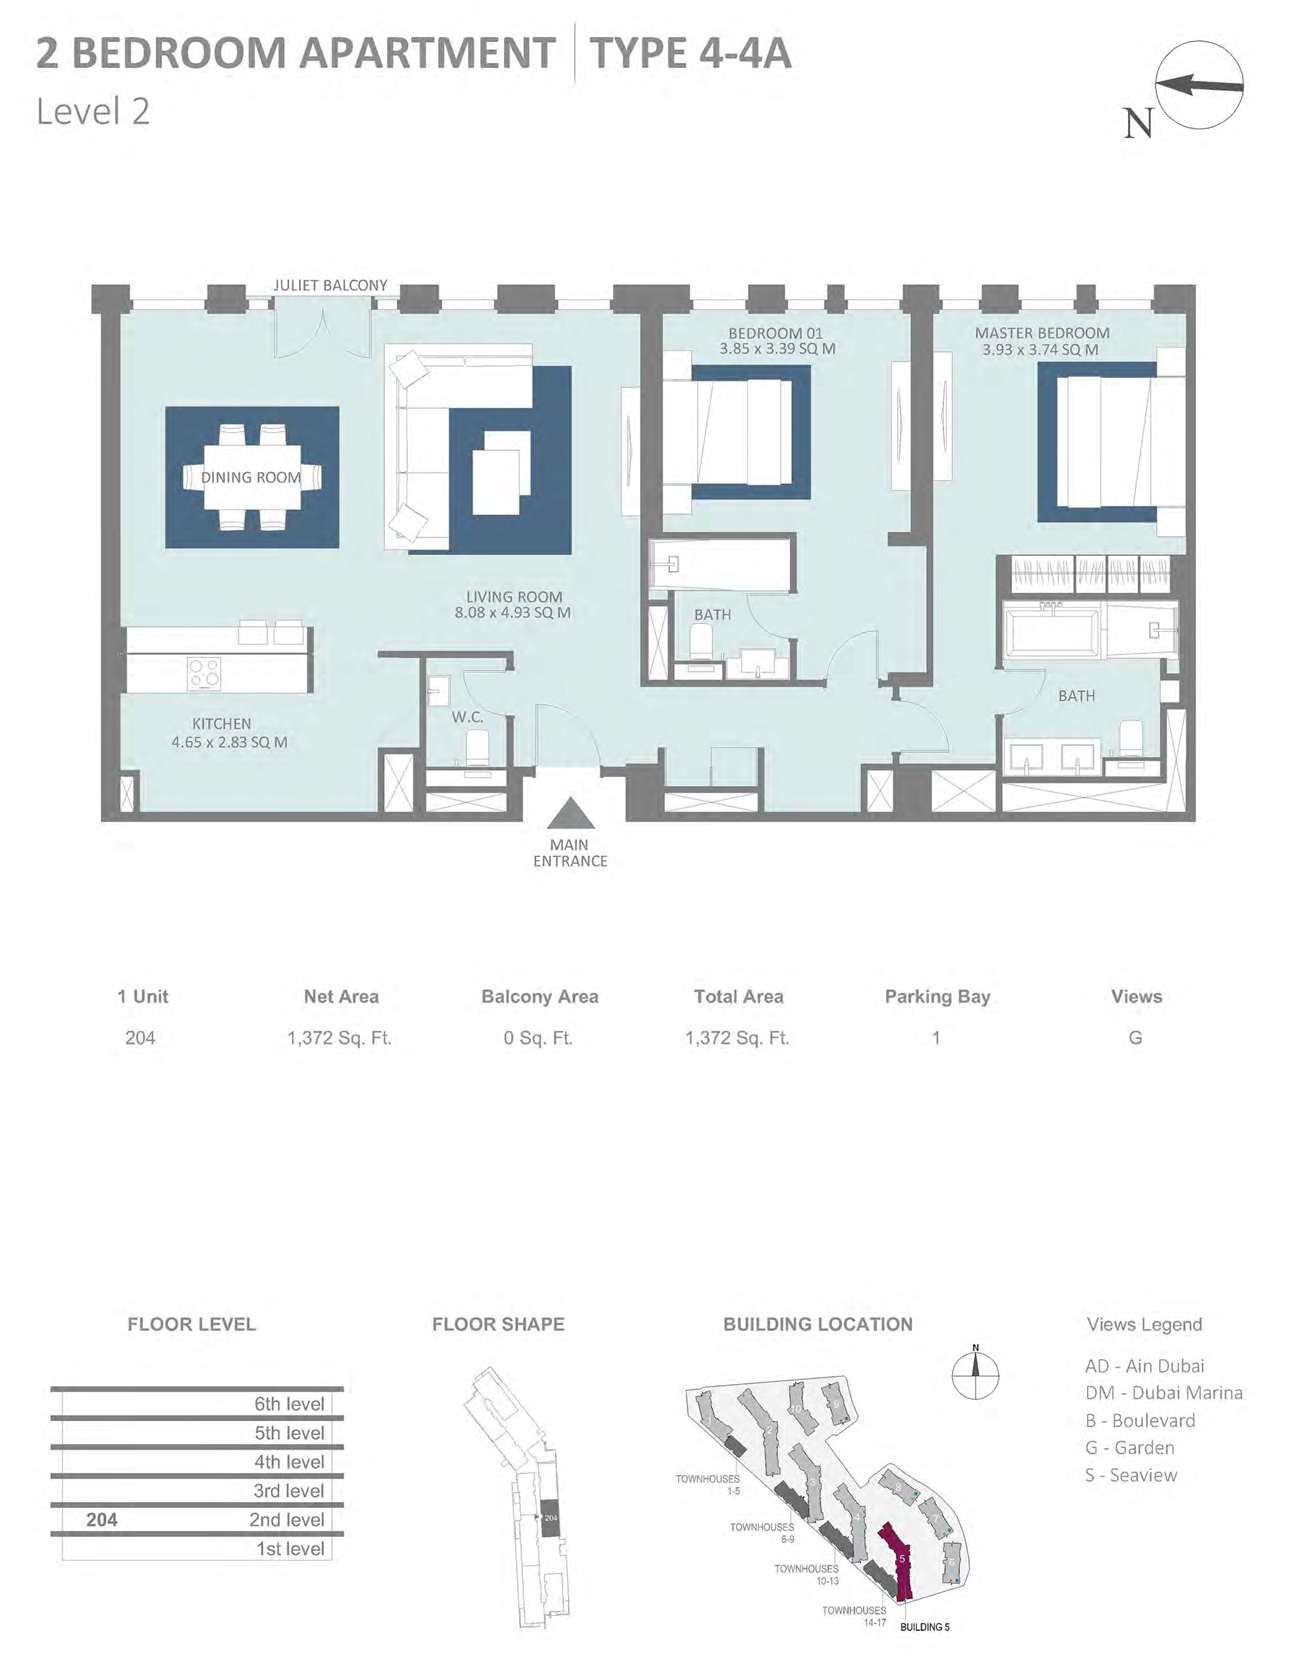 Building 5 - 2 Bedroom Type 4-4A Level 2 , Size 1372    sq. ft.